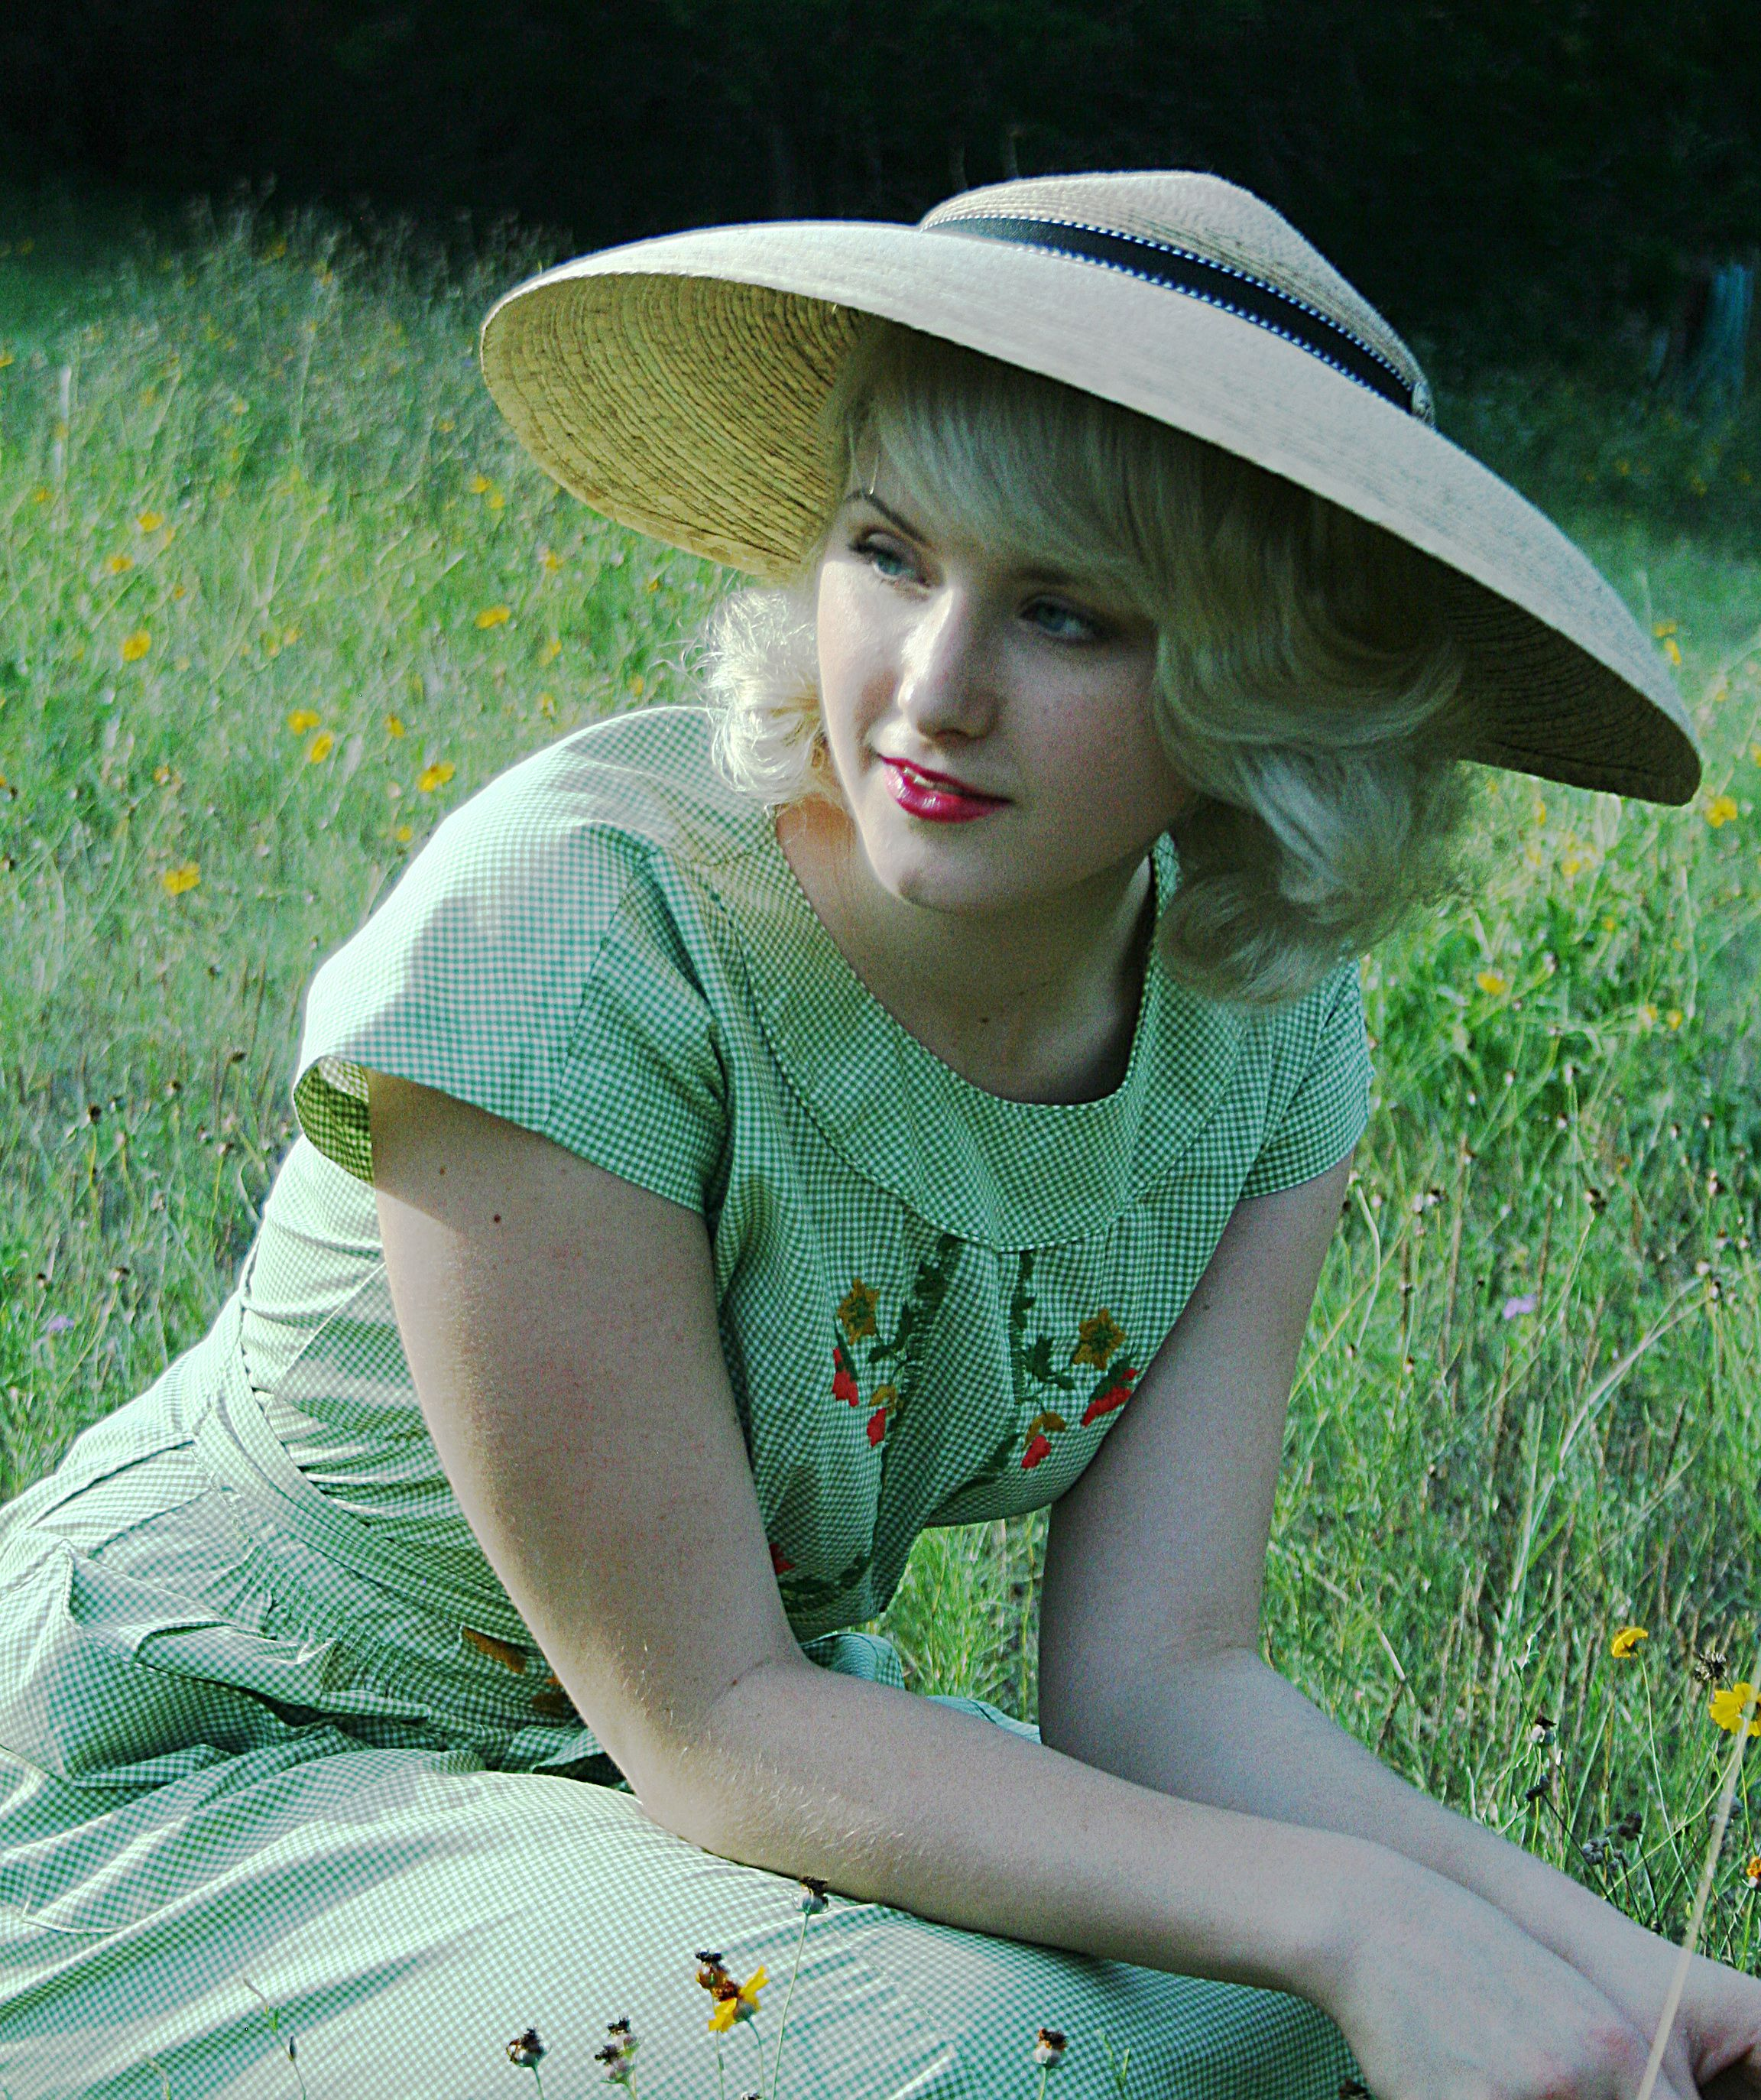 2135a36e938 Ava by Tula Hats. A vintage inspired look that has an added bonus of  excellent sun protection. Design by Alice Eichelmann.